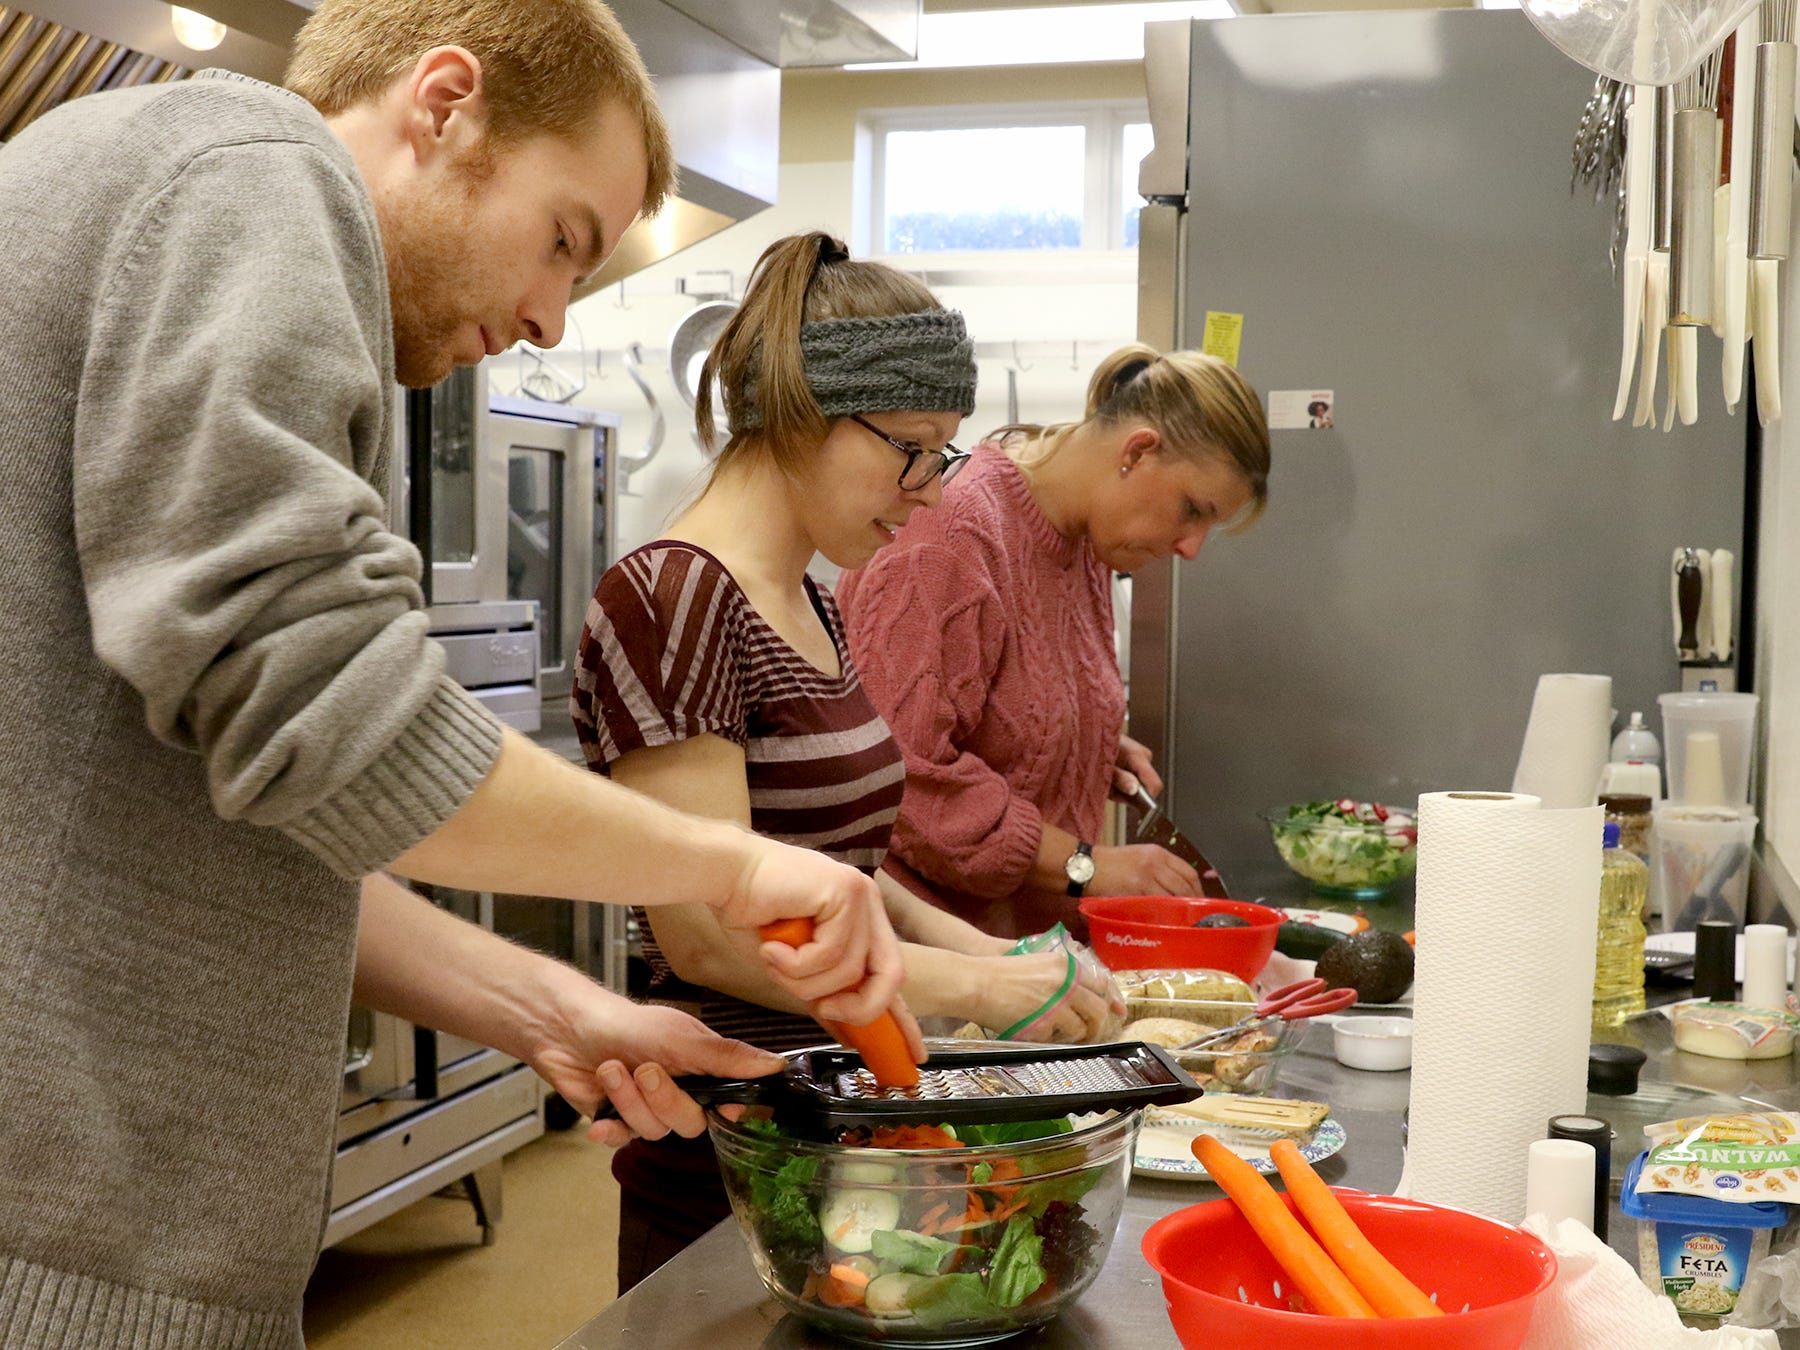 Craig Andrews (left) shreds carrots for his salad while sous chef Britney Doyle (center) shreds chicken and Brandy Mathews chops vegetables at Kitsap Community Resources kitchen in Bremerton on Thursday, February 21, 2019.